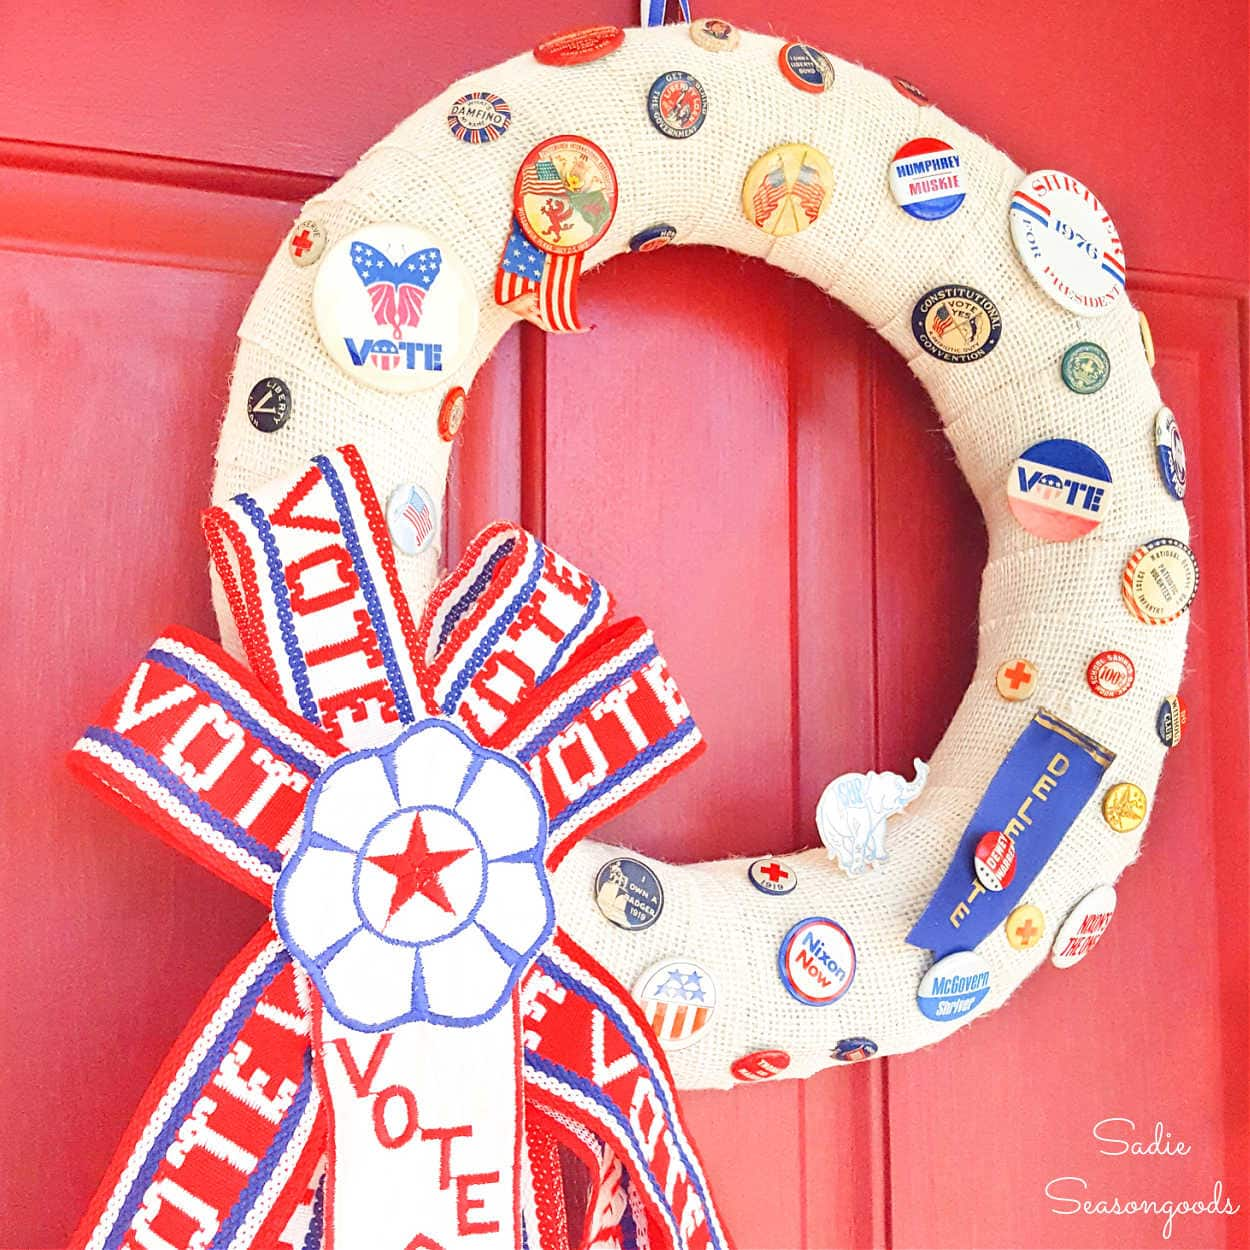 Red, White, and Blue Wreath with Vintage Campaign Buttons